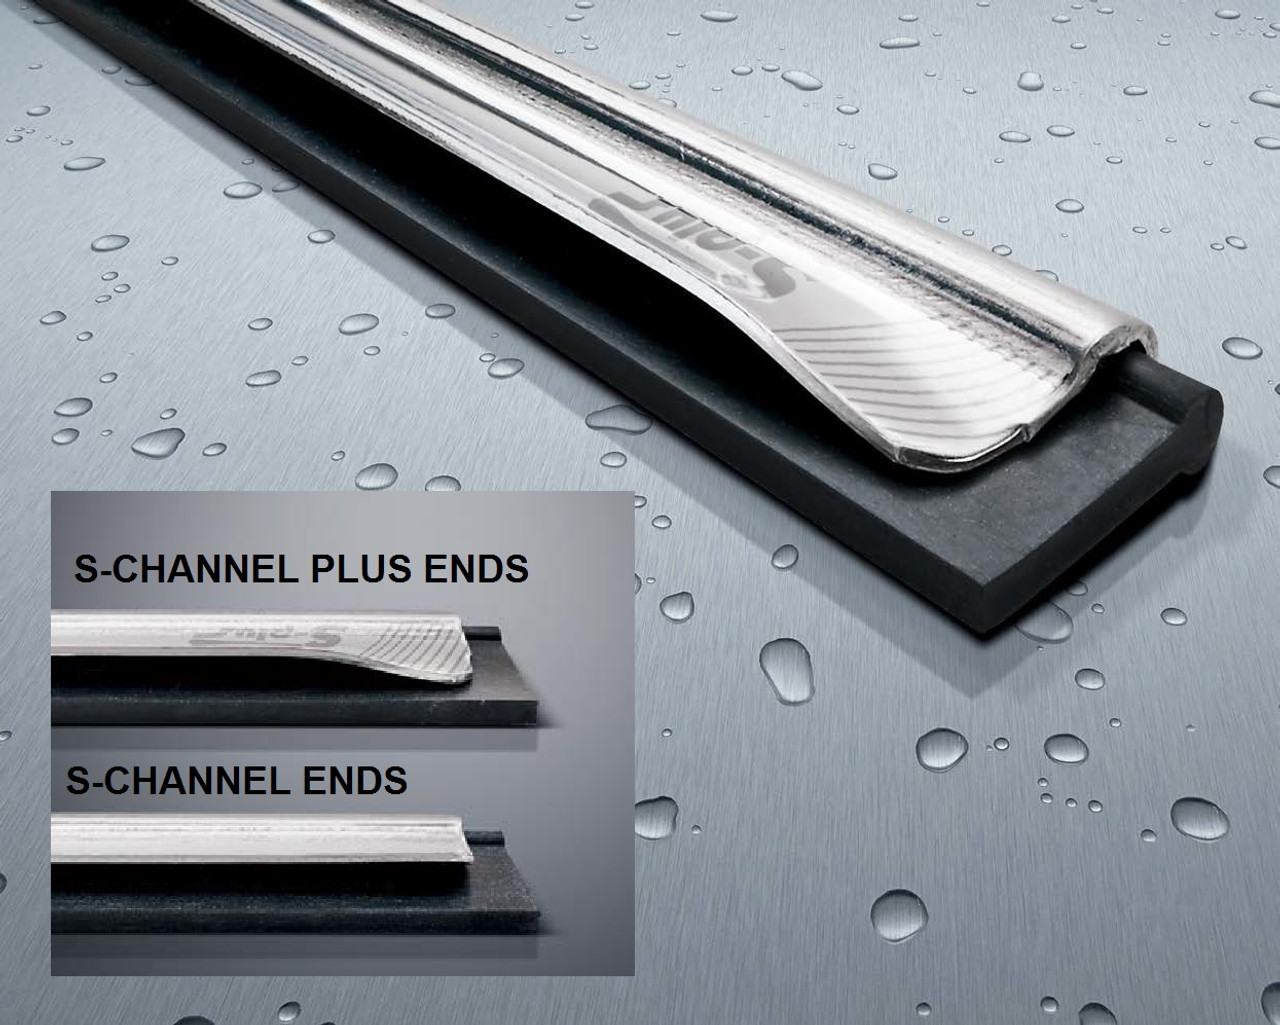 window cleaning tools, window cleaning channel, unger s-channel plus